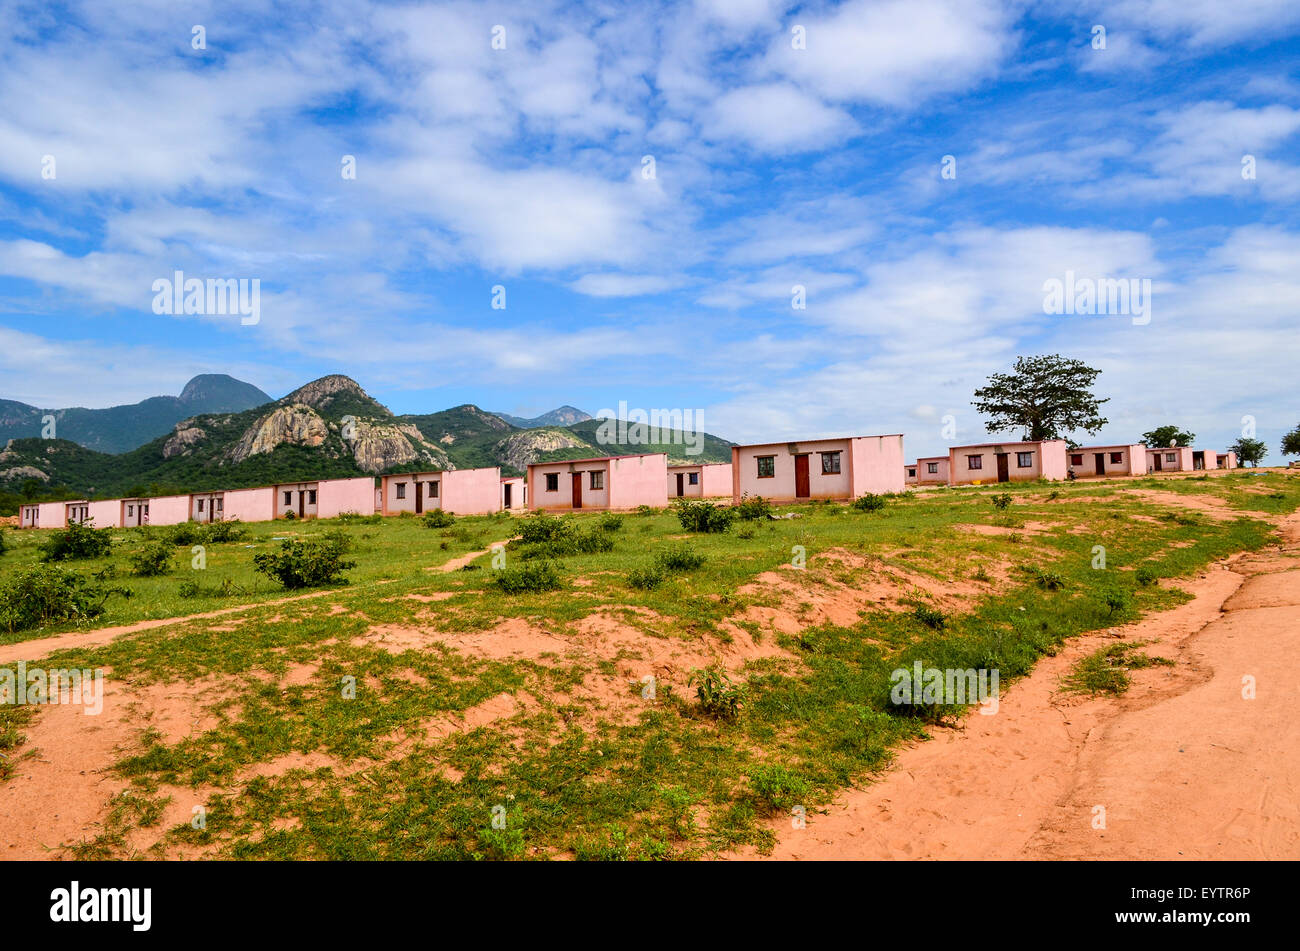 Government housing in Catanda, Namibe province, Angola - Stock Image